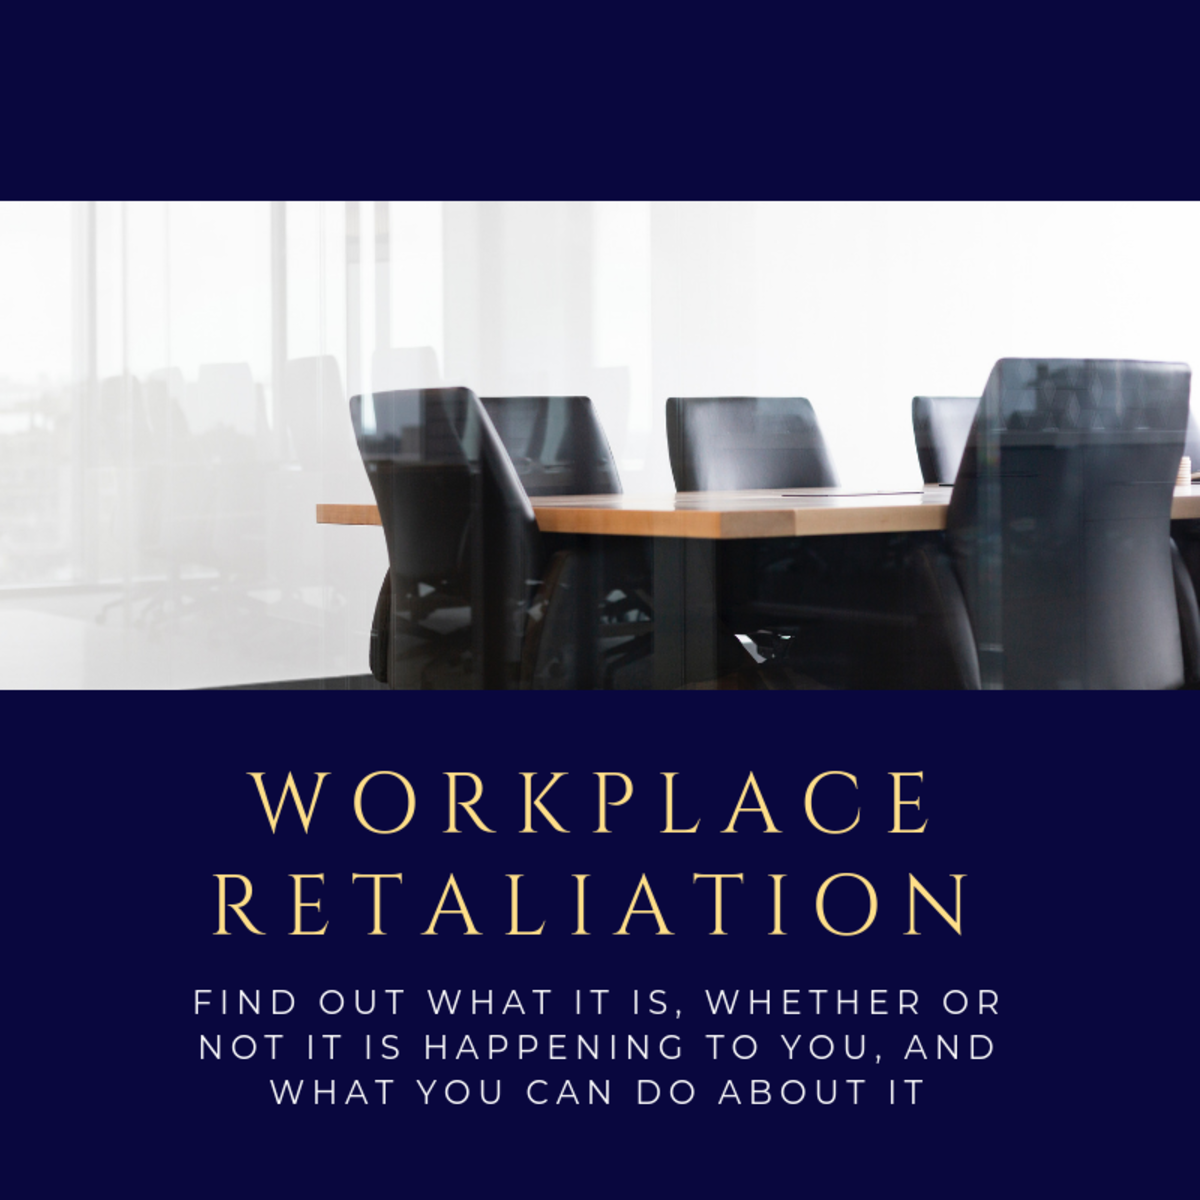 What Is Workplace Retaliation? And Why Are Employers So Afraid of It